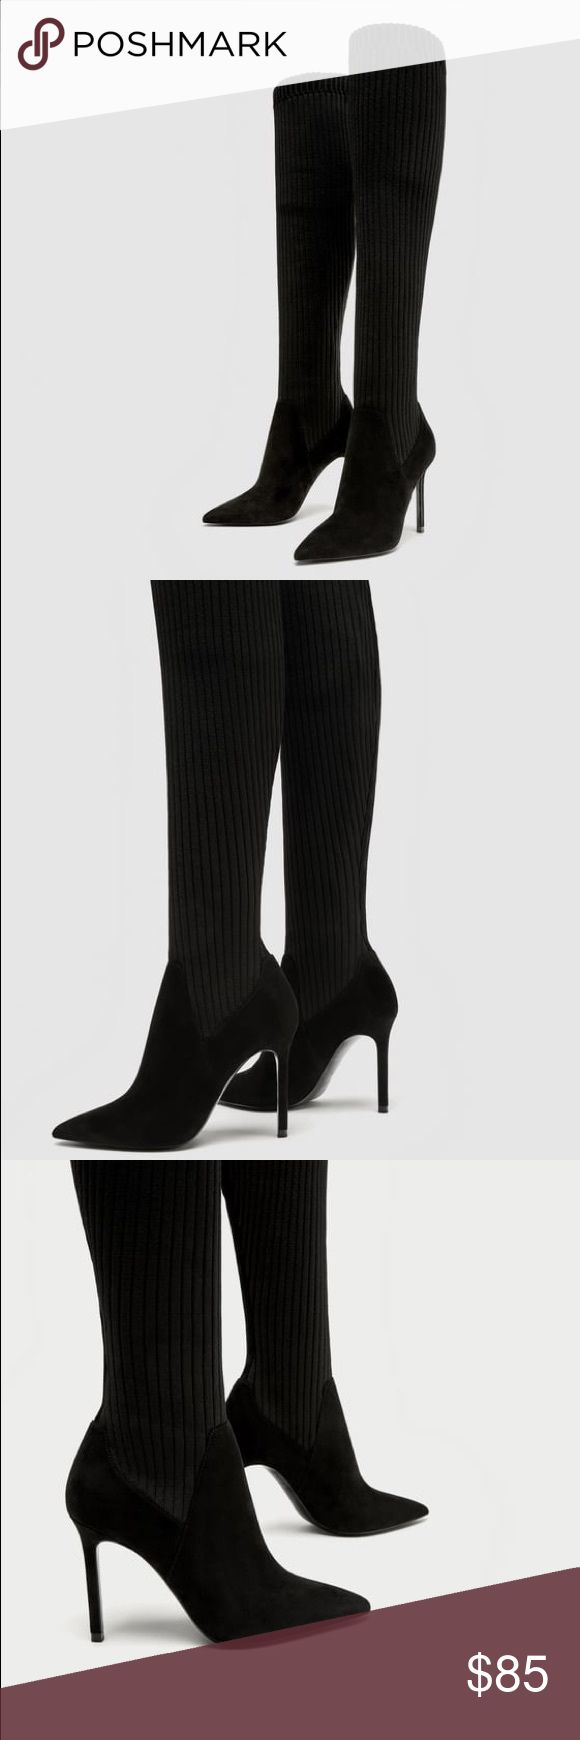 NWT Zara SEXY Sock Style Knee High High Heel Boots Black over-the-knee boots. Featuring ribbed stretch legs, stiletto heels and pointed toes.   Heel height of 10,0 cm. / 3.9″ Zara Shoes Heeled Boots